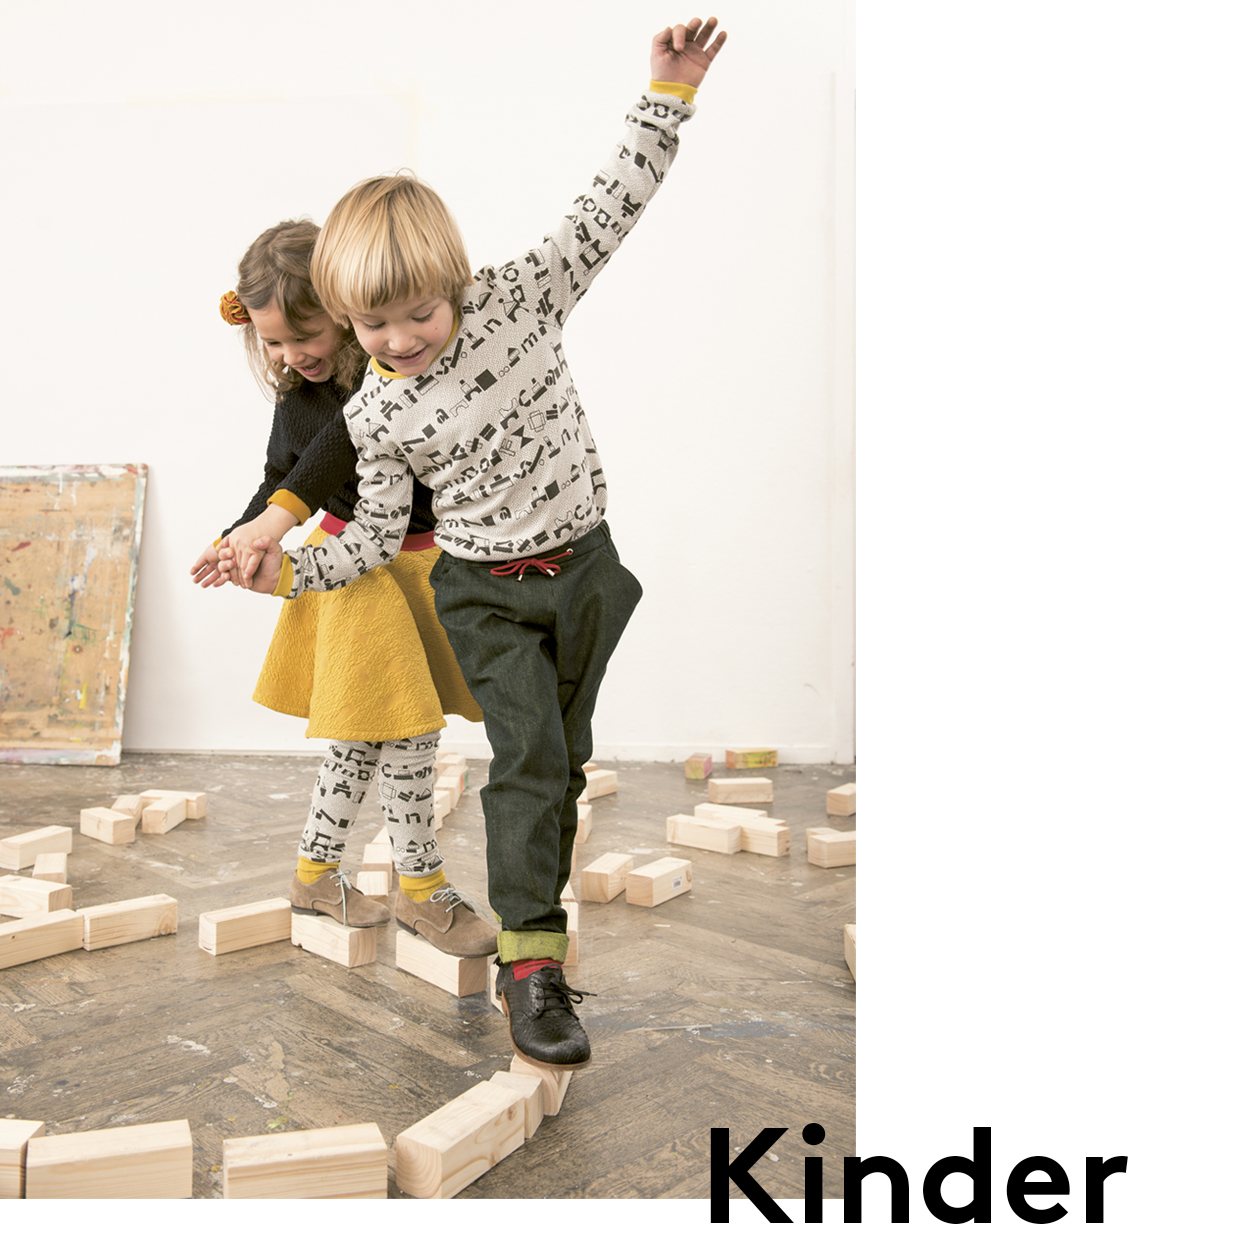 die kids kollektion herbst-winter 2016/2017